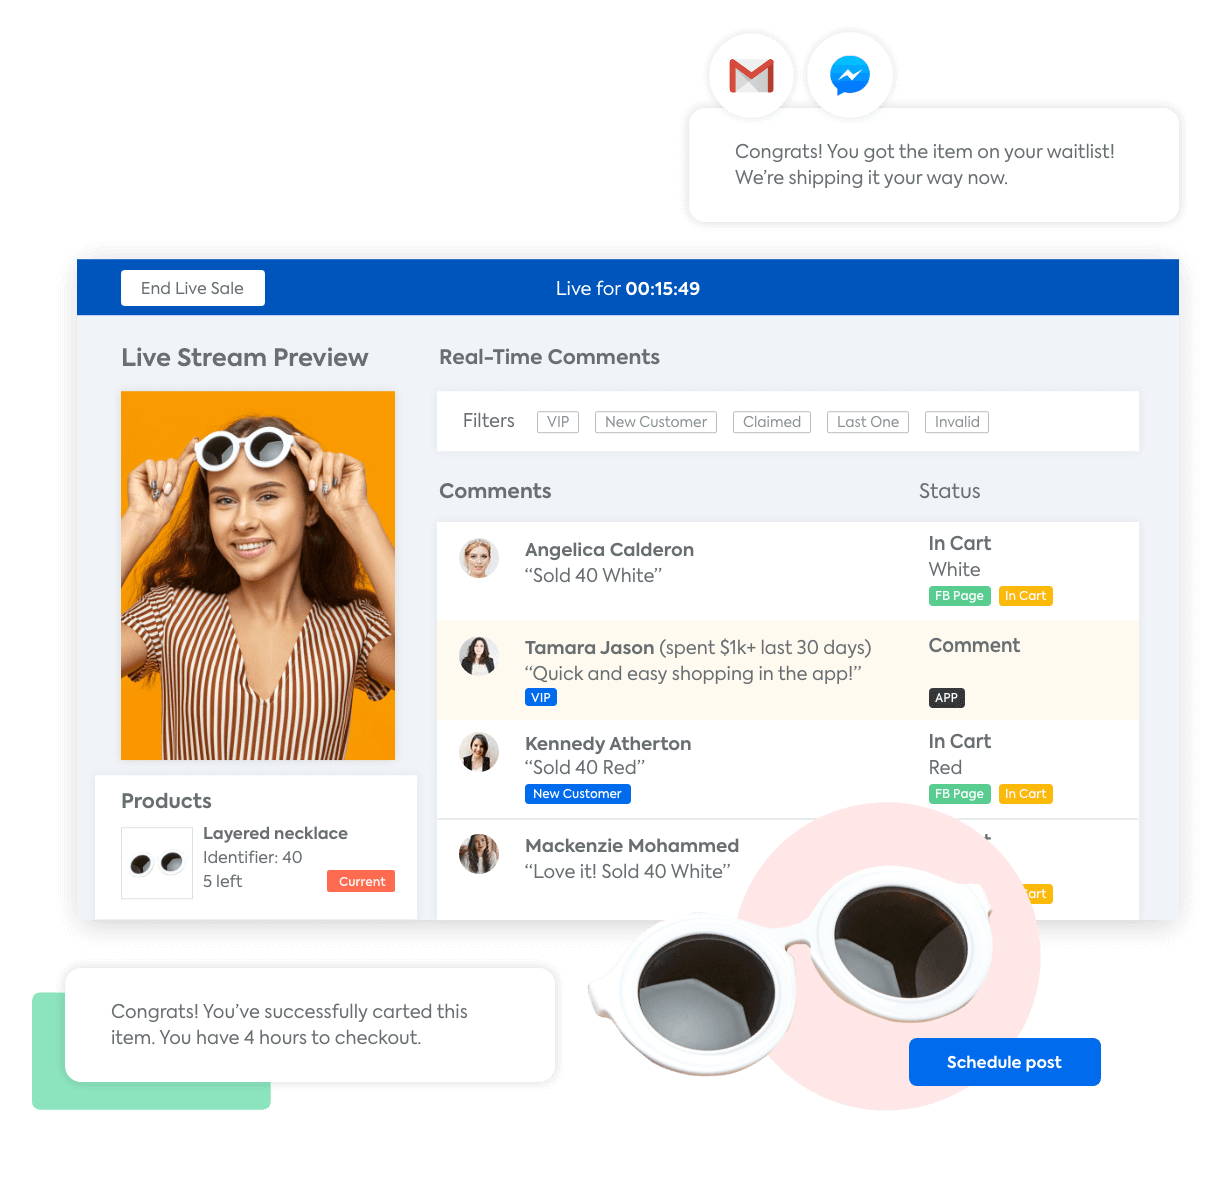 A mockup of the CommentSold Talent View with a woman selling sunglasses on Facebook Live and automated messages